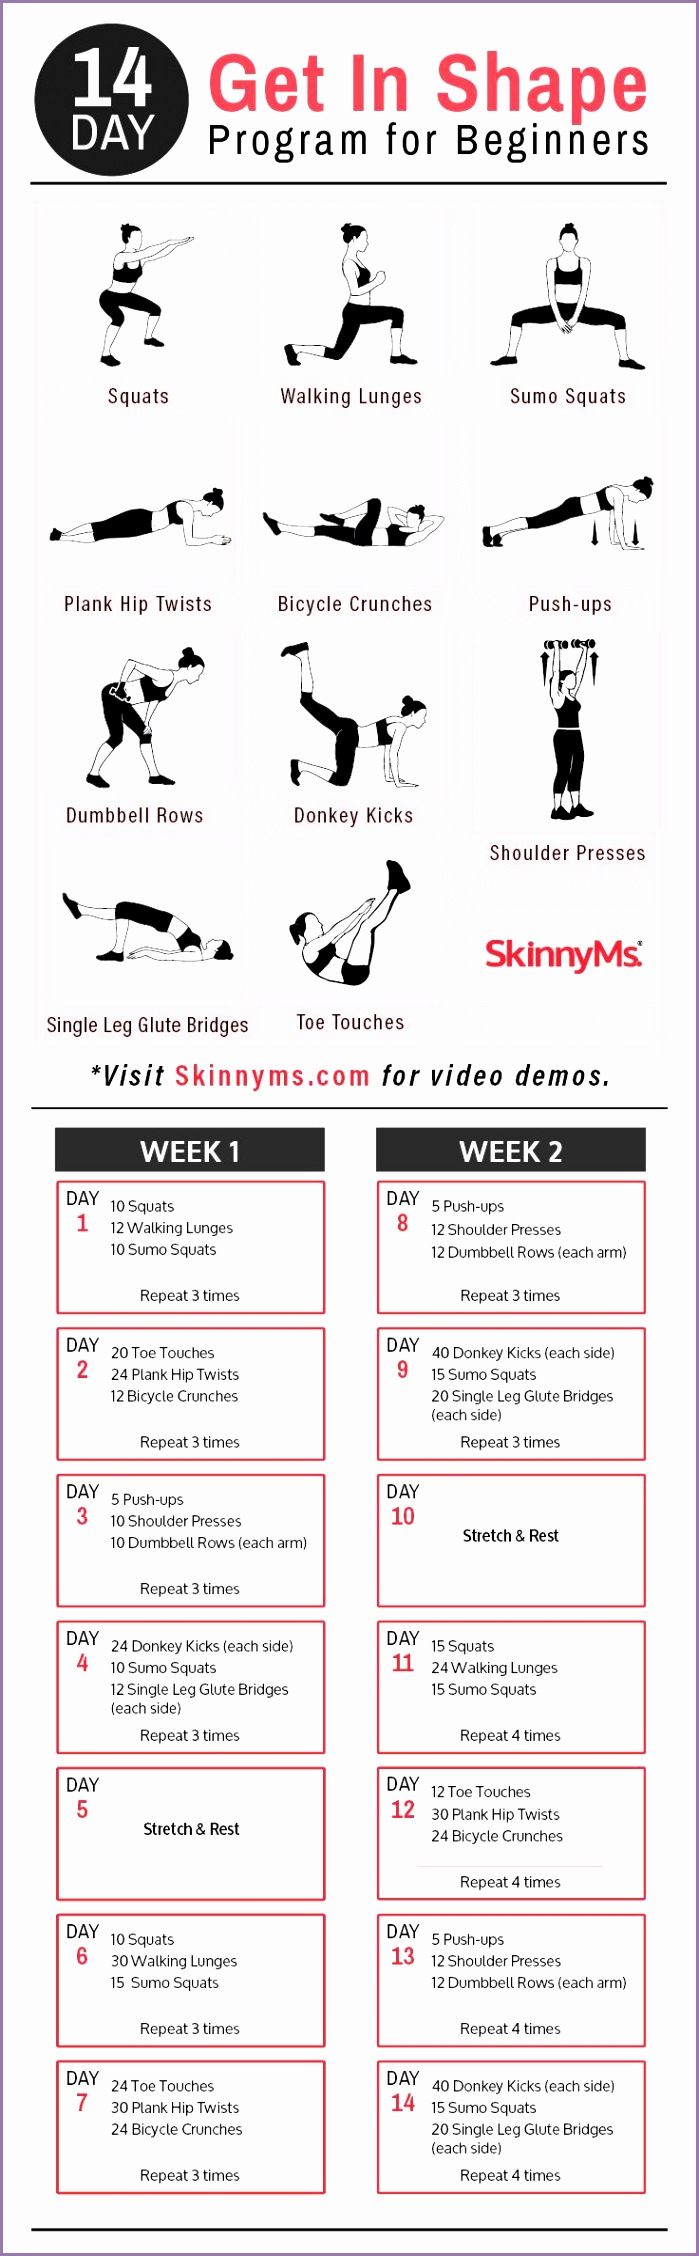 14 Day Get In Shape Program for Beginners